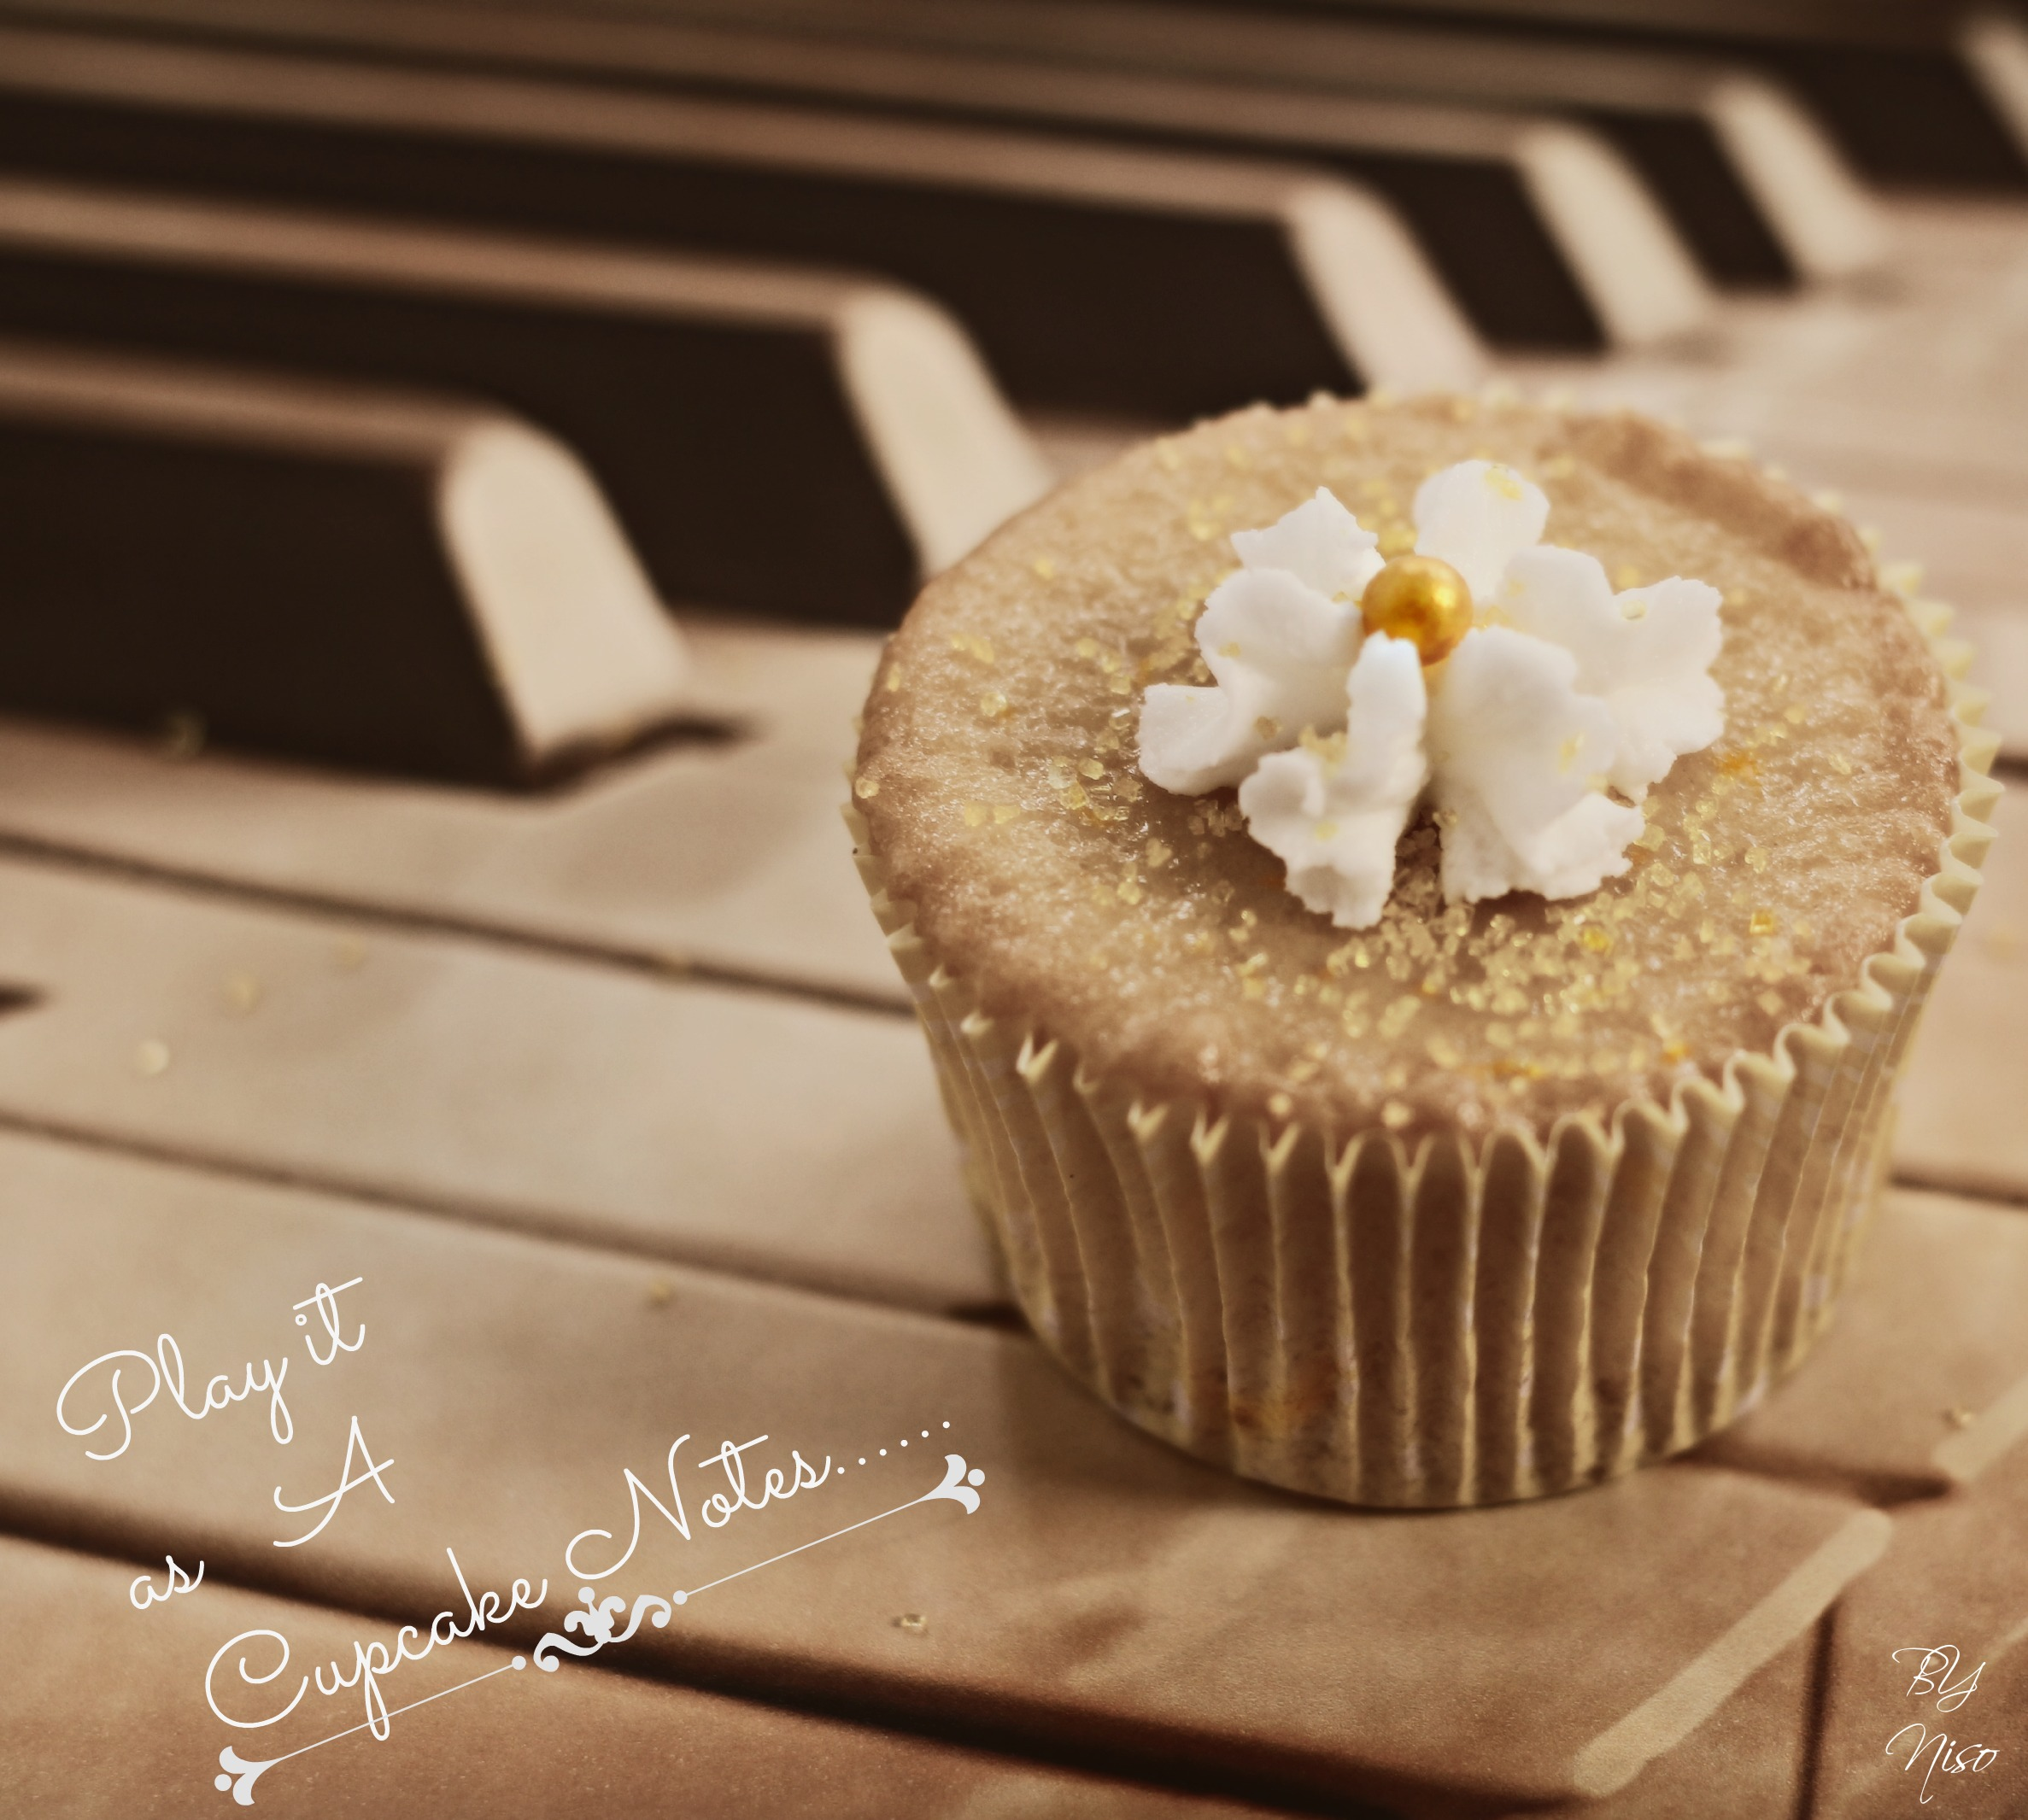 cupcake note